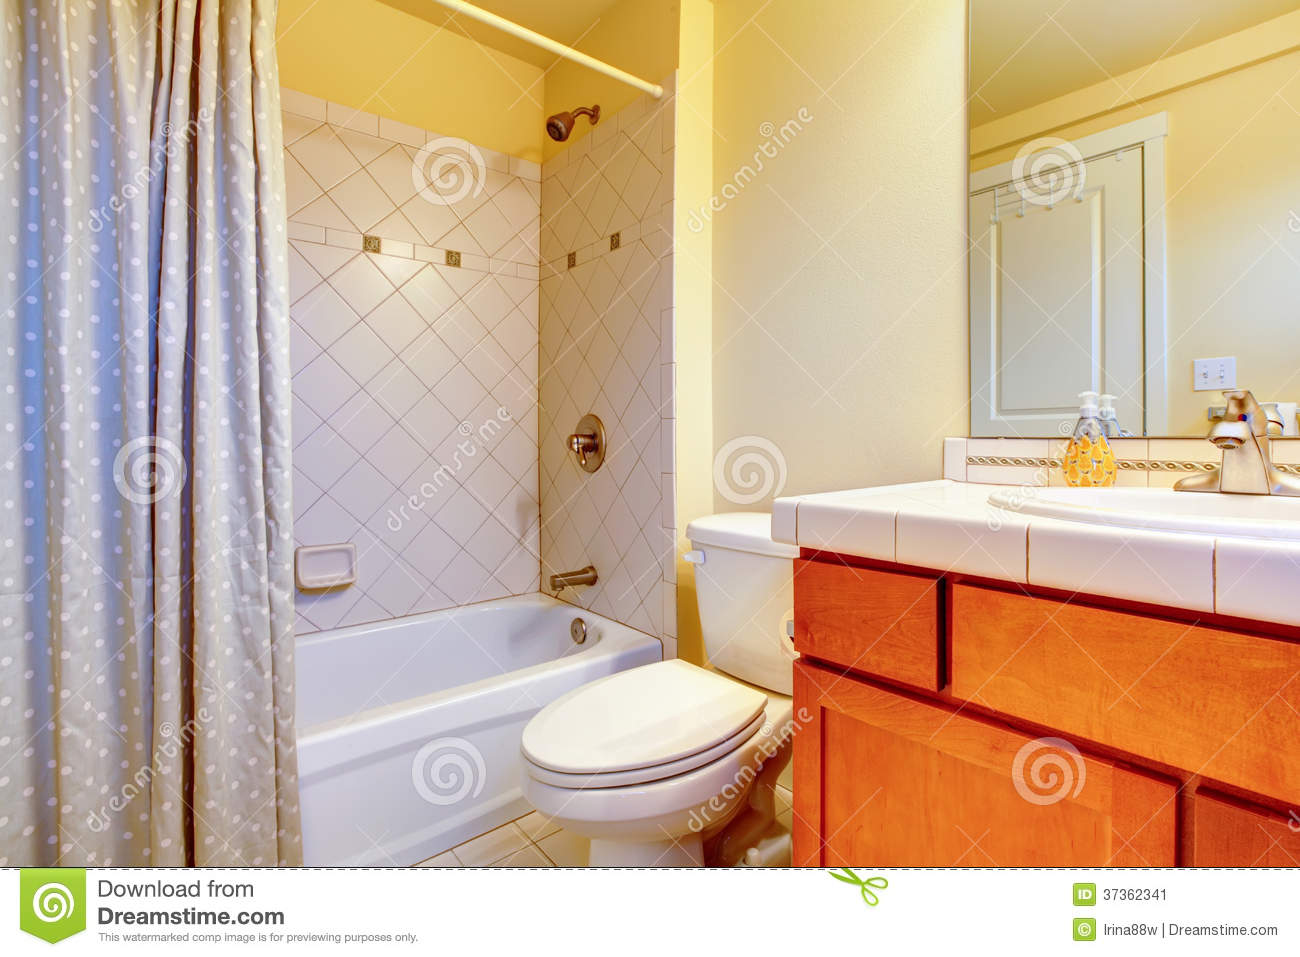 Cozy Light Yellow Bathroom Stock Image Image Of Sink 37362341